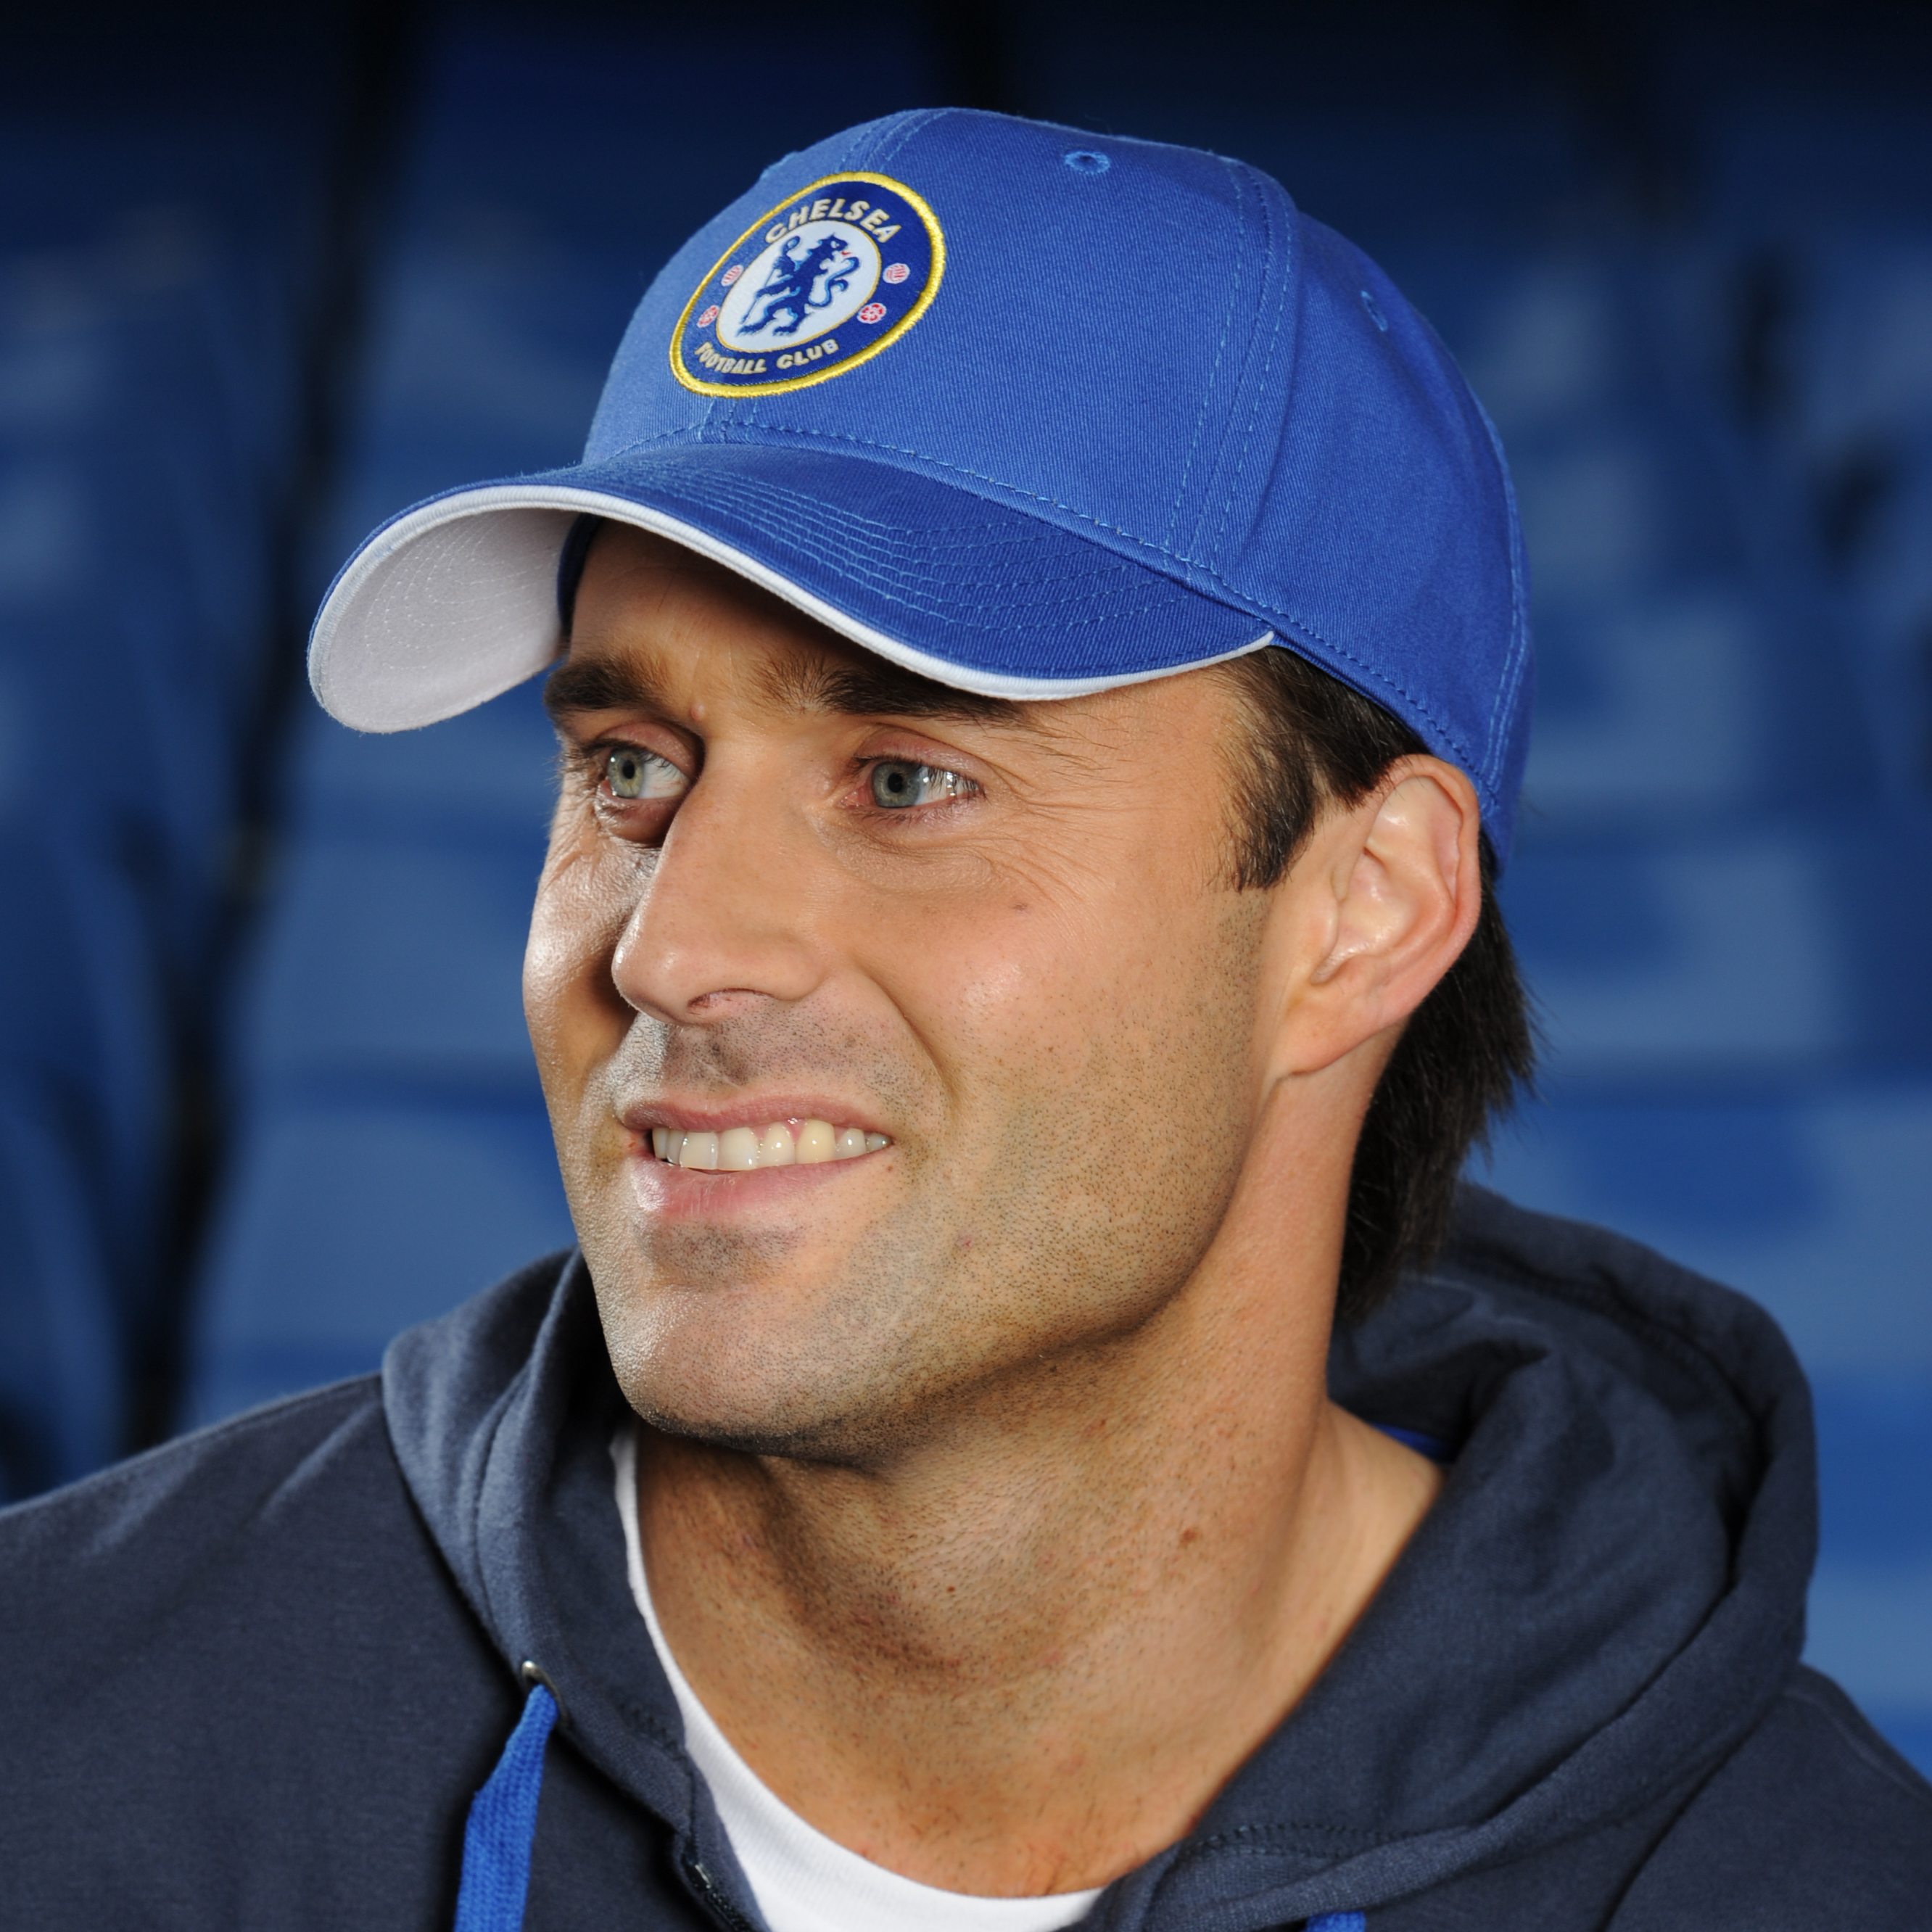 Chelsea Crest Cap - Blue